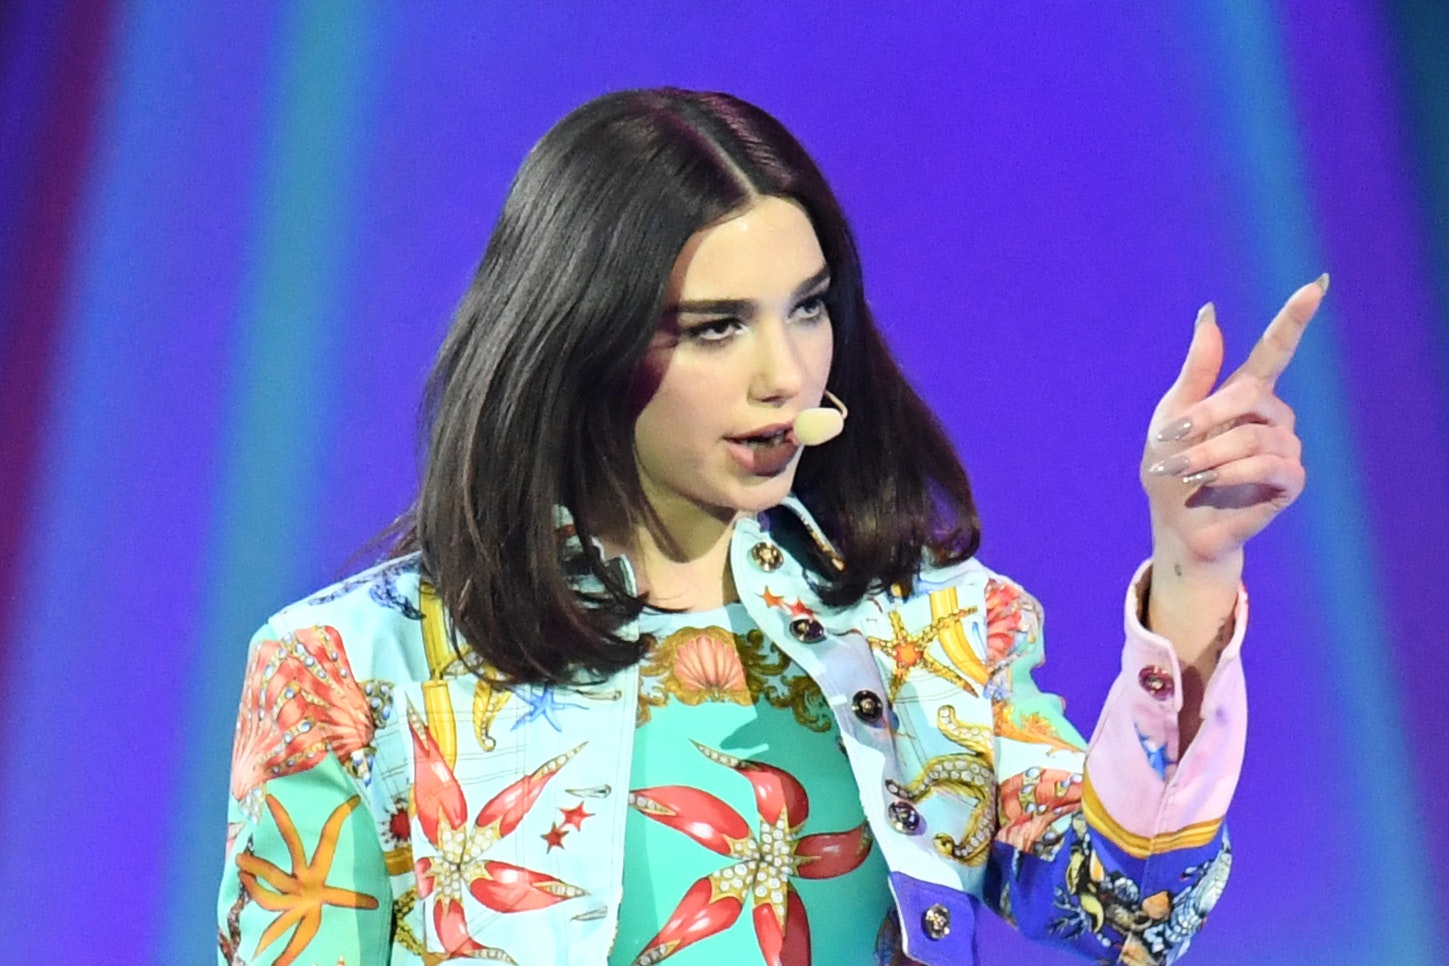 Dua Lipa on stage